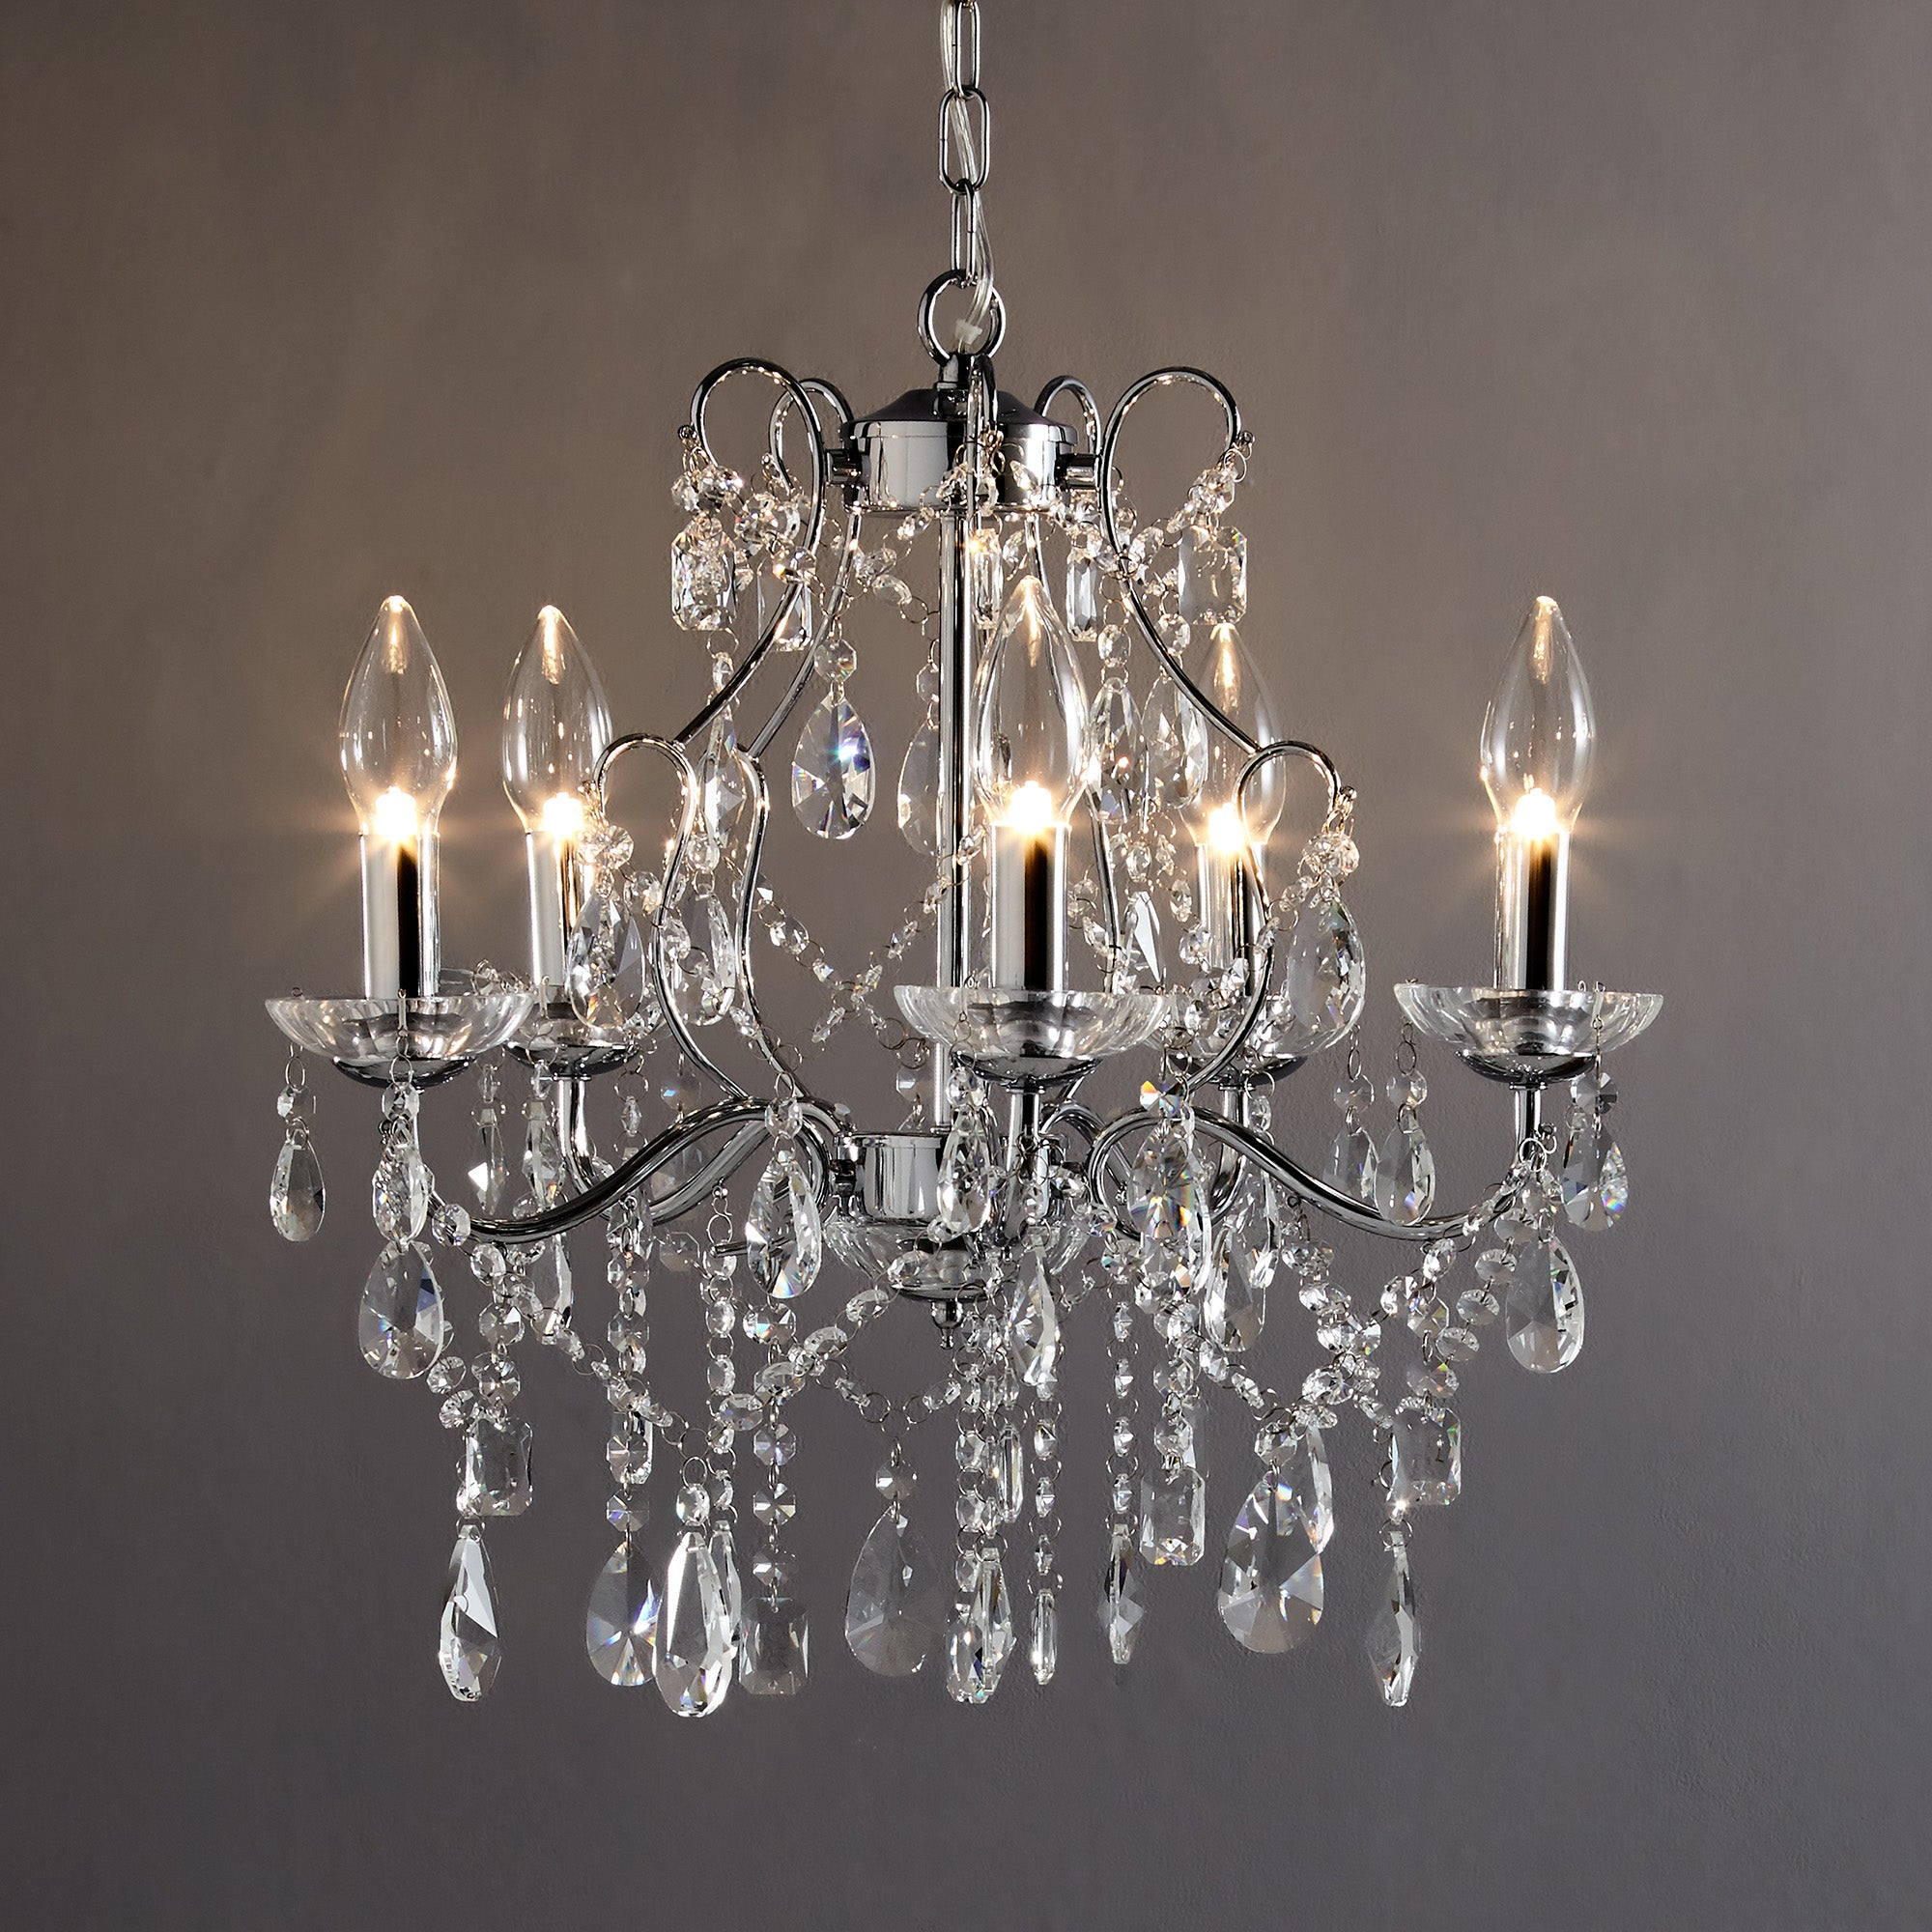 Image of Marquis by Waterford Annalee Chrome 5 Light Chandelier Chrome